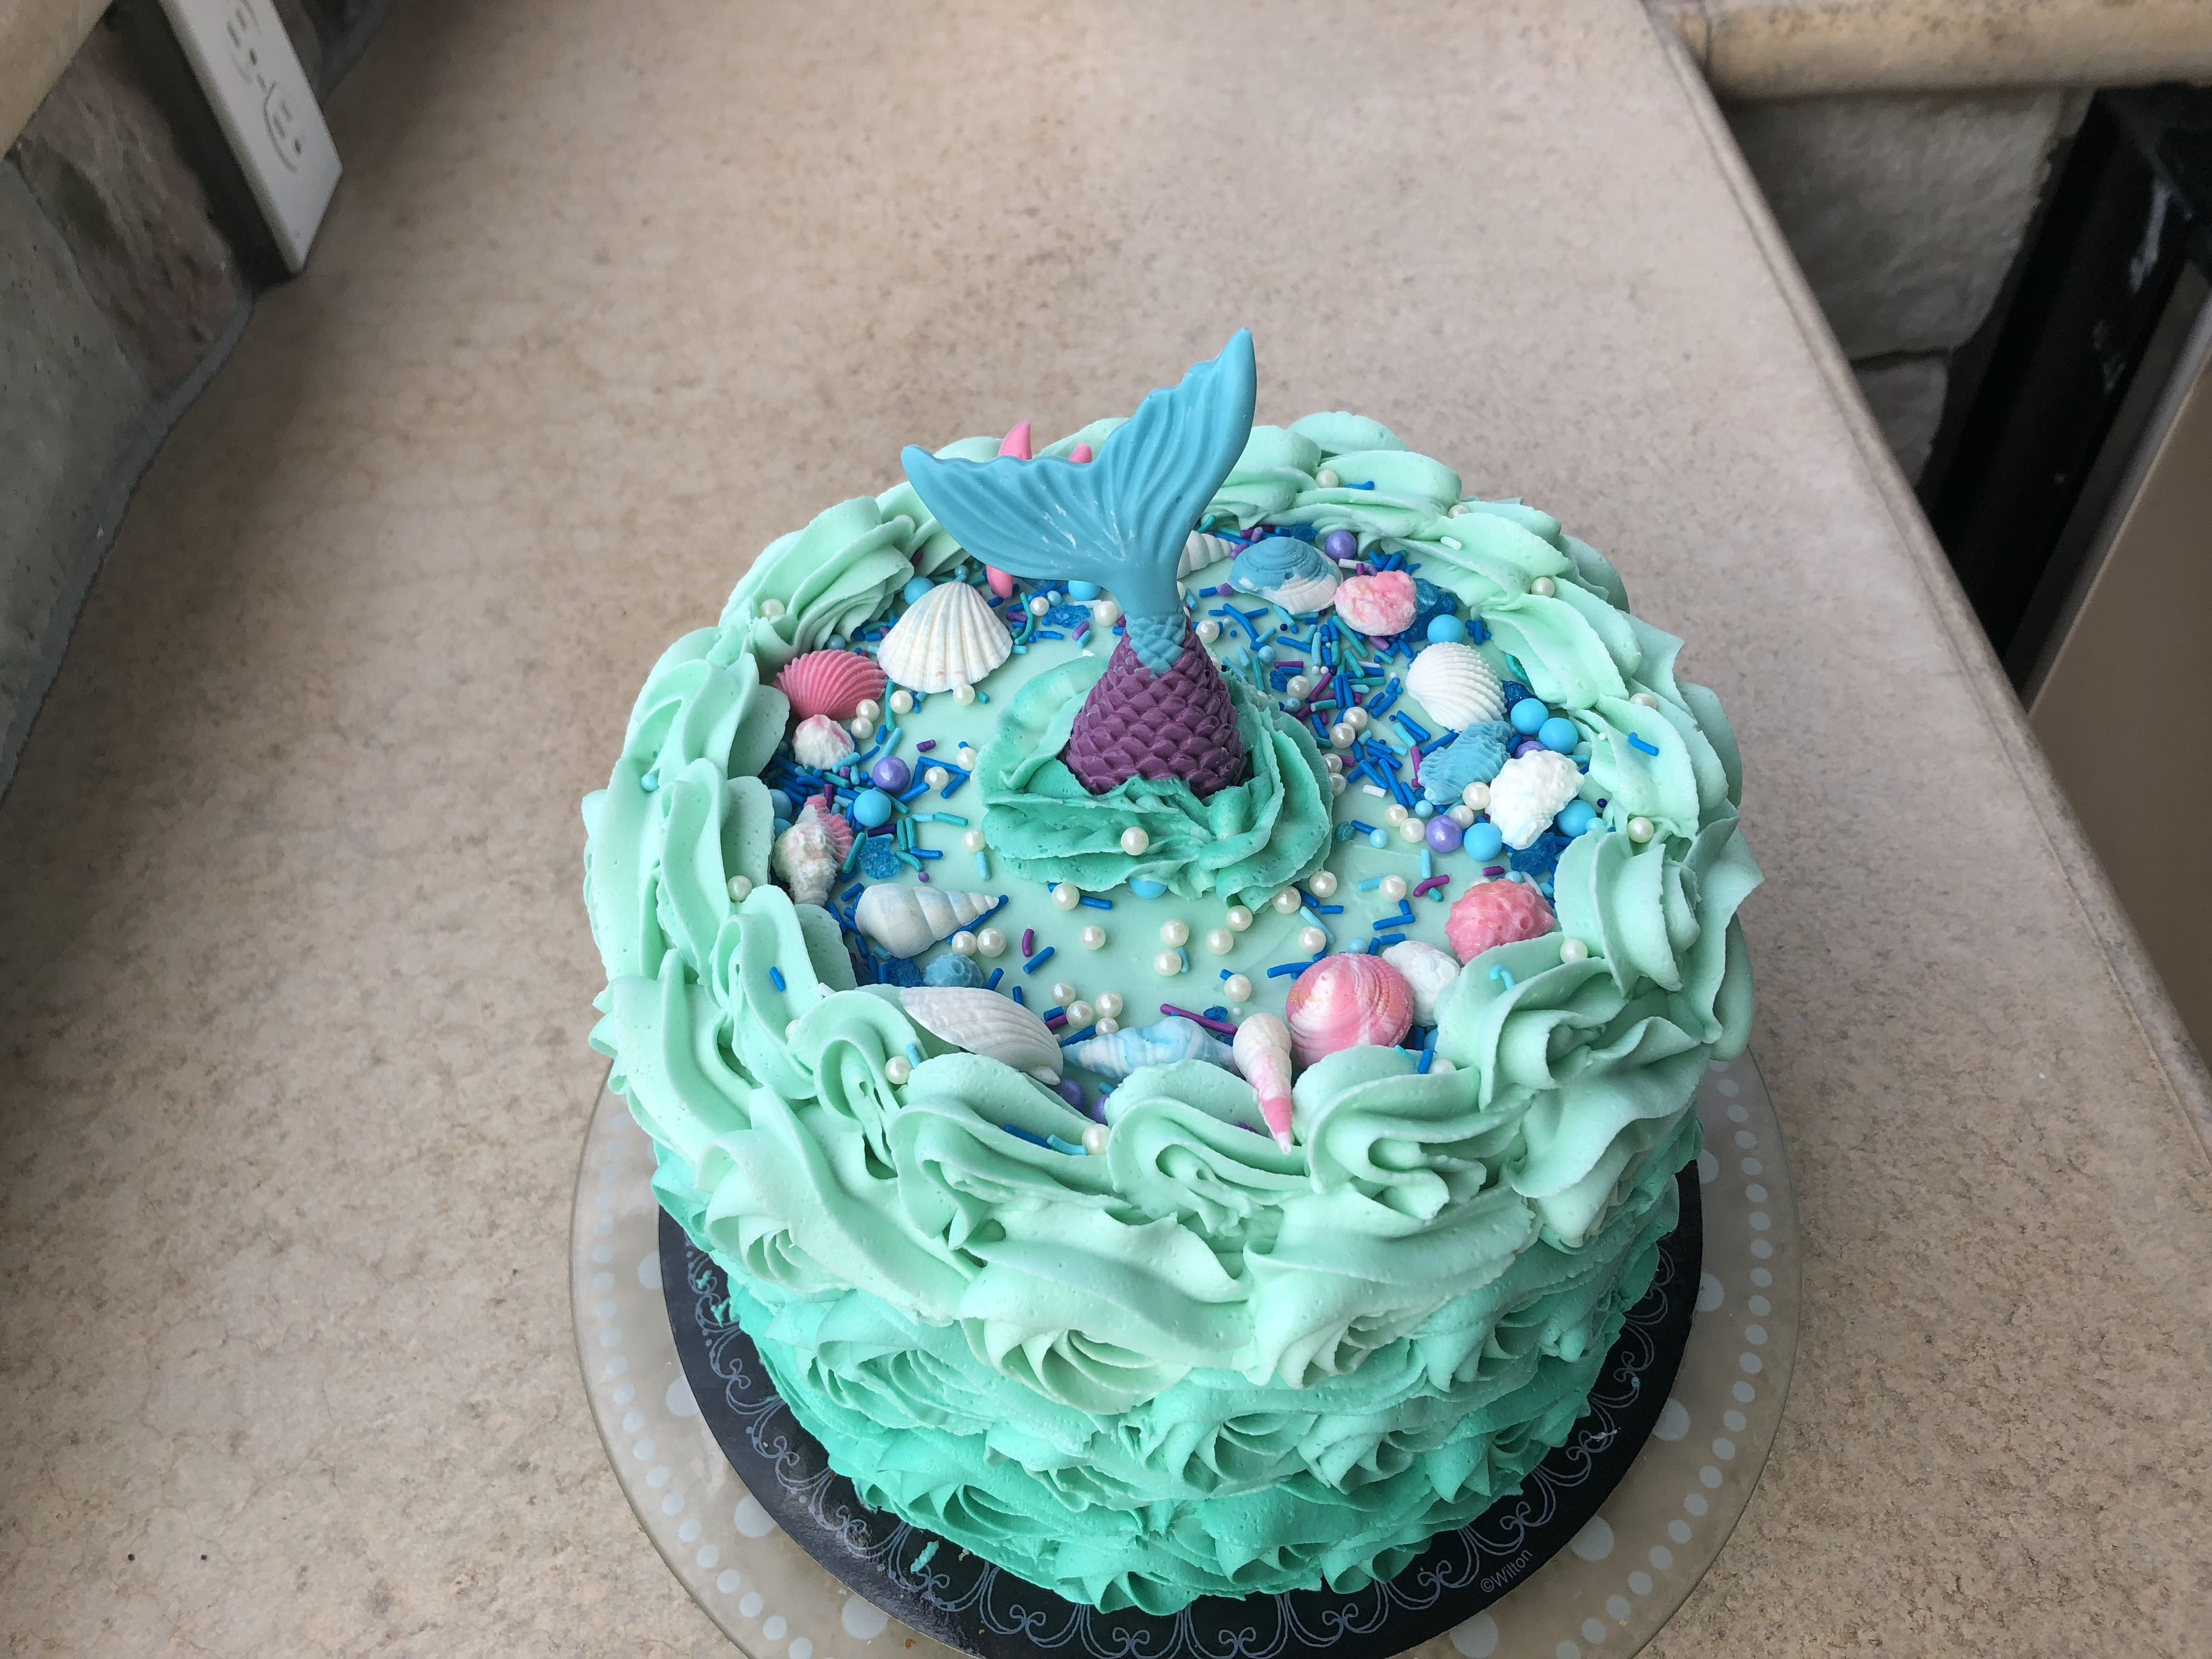 2018 10 This Is A 6 Layer 8 Inch Round Mermaid Cake With Purple